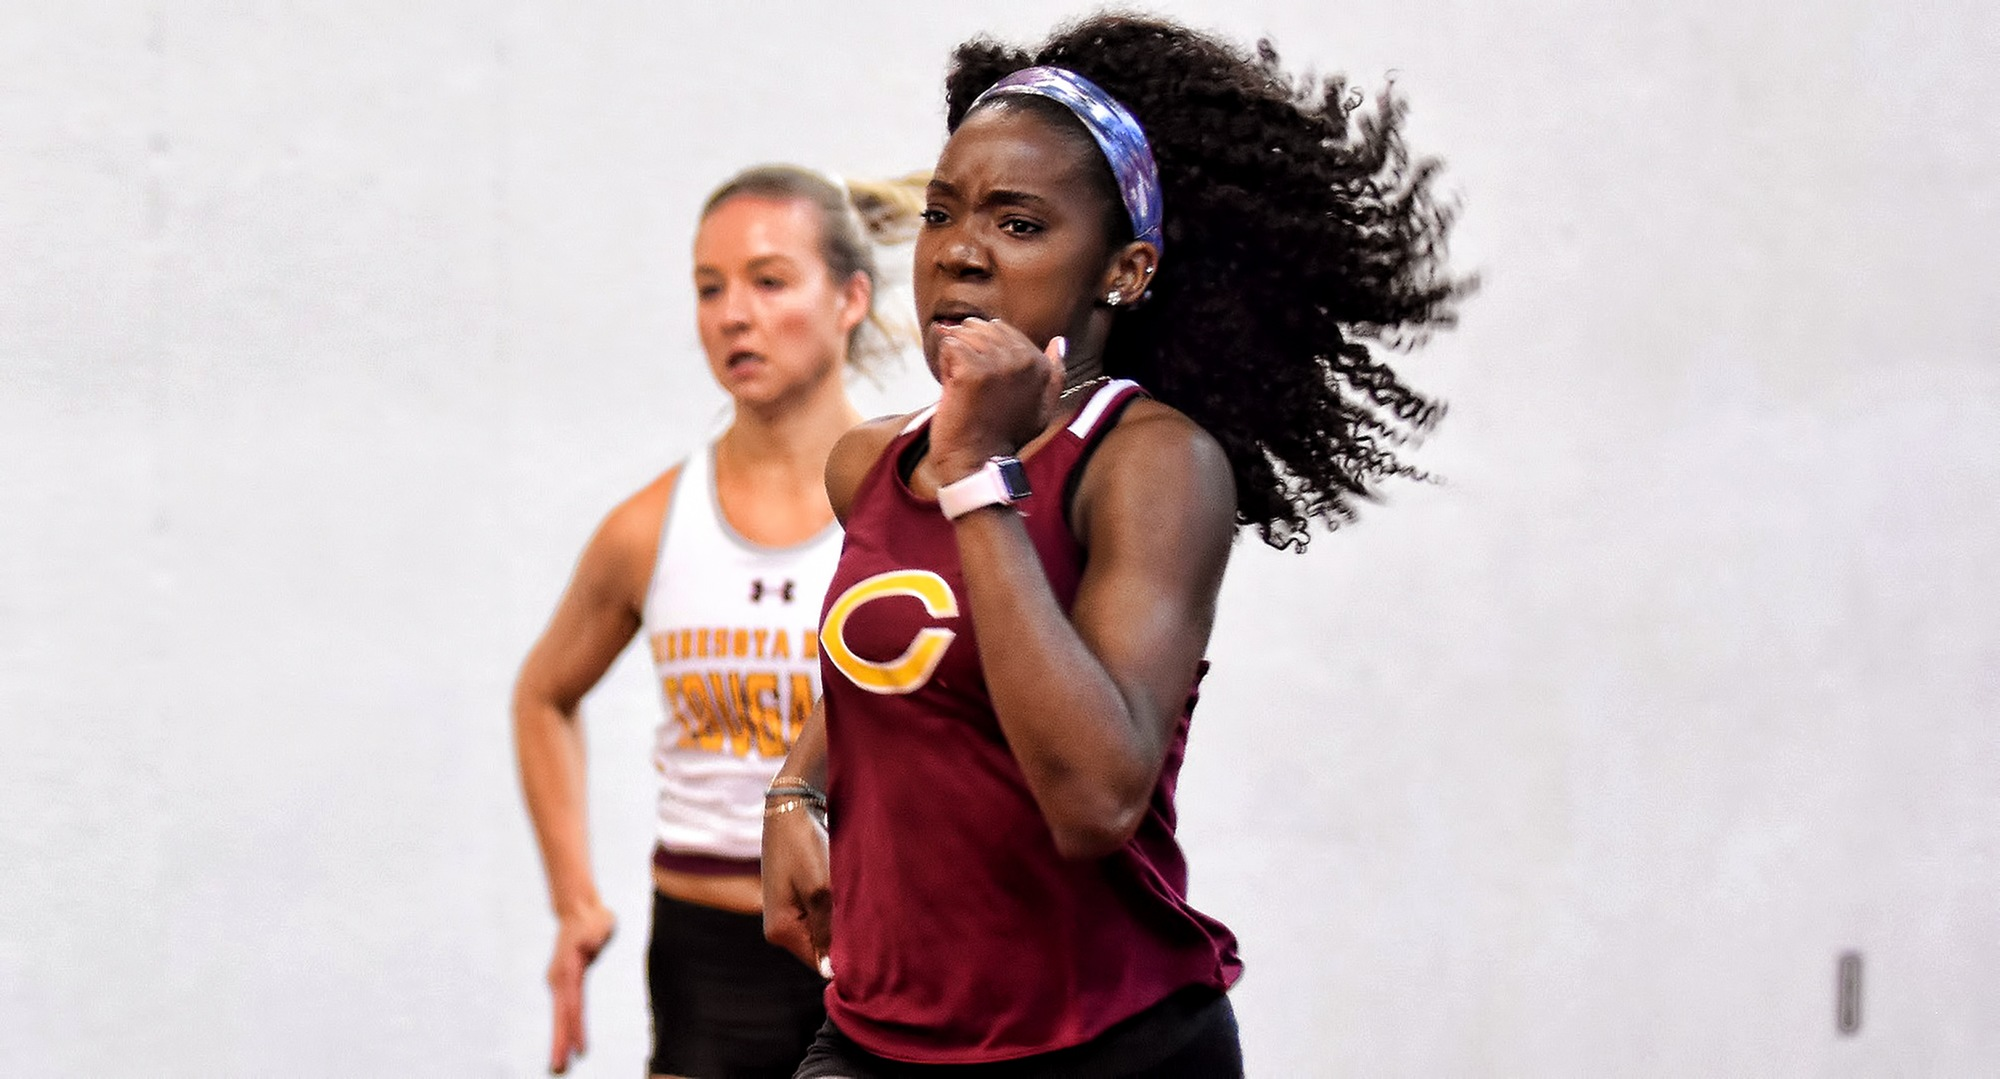 Senior Zahra Banks won the 60-meter dash at the St. Benedict Invite with the fifth fastest time in school history. Her event win helped the Cobbers claim the team championship.